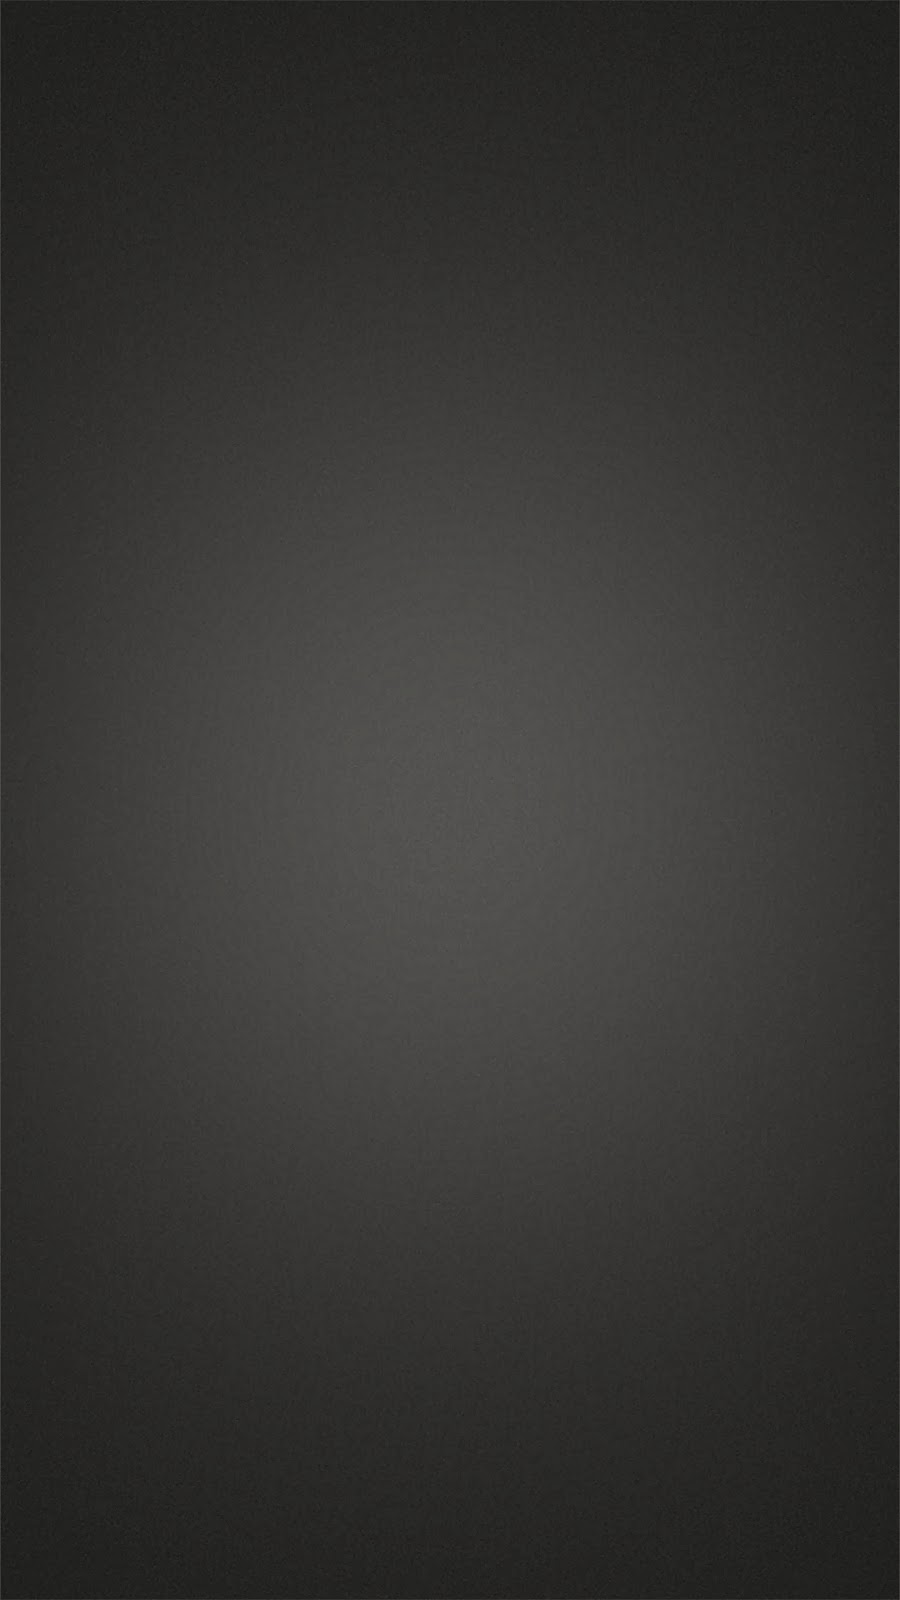 android phone black wallpapers